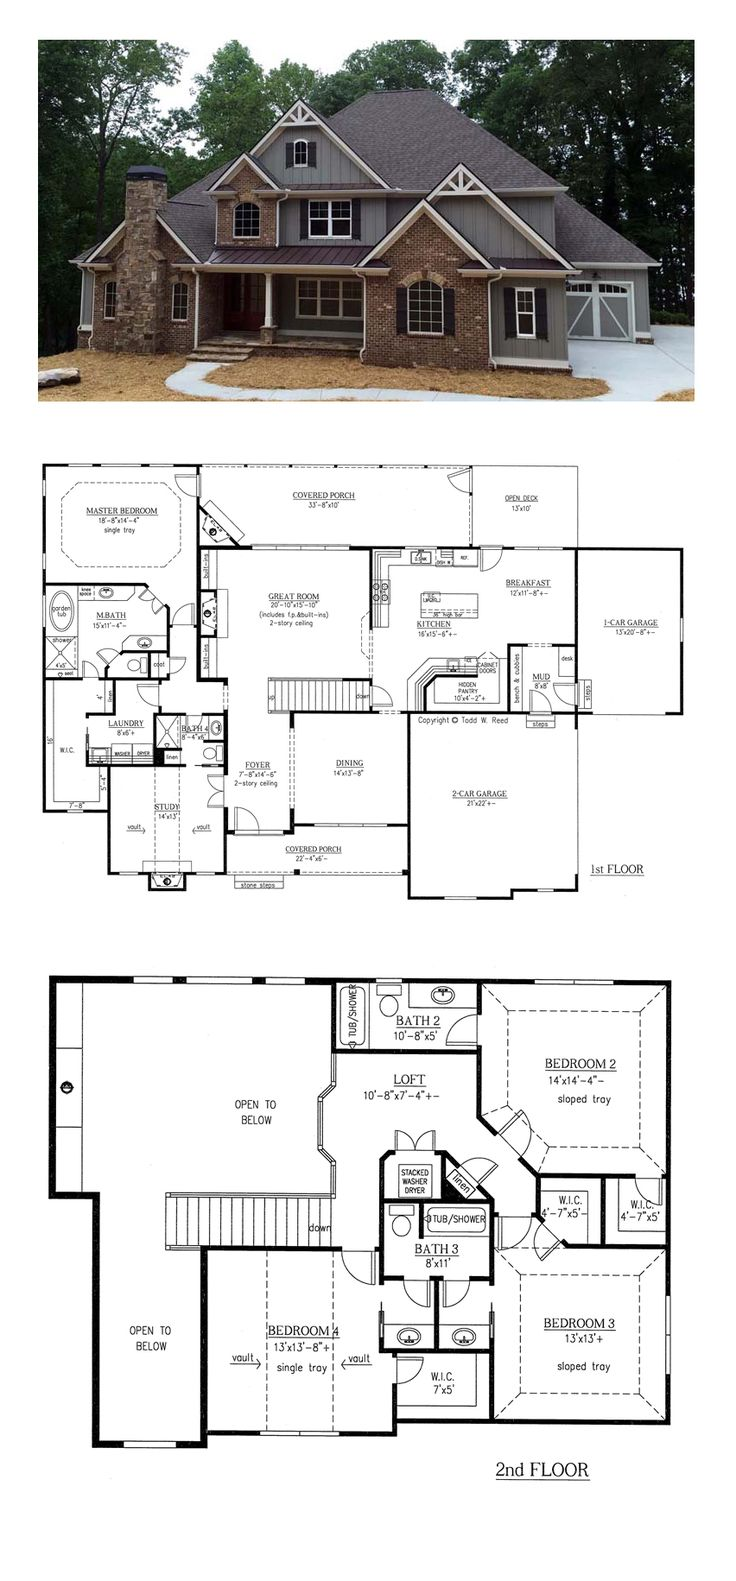 Best 25 dream house plans ideas on pinterest house for Three family house plans